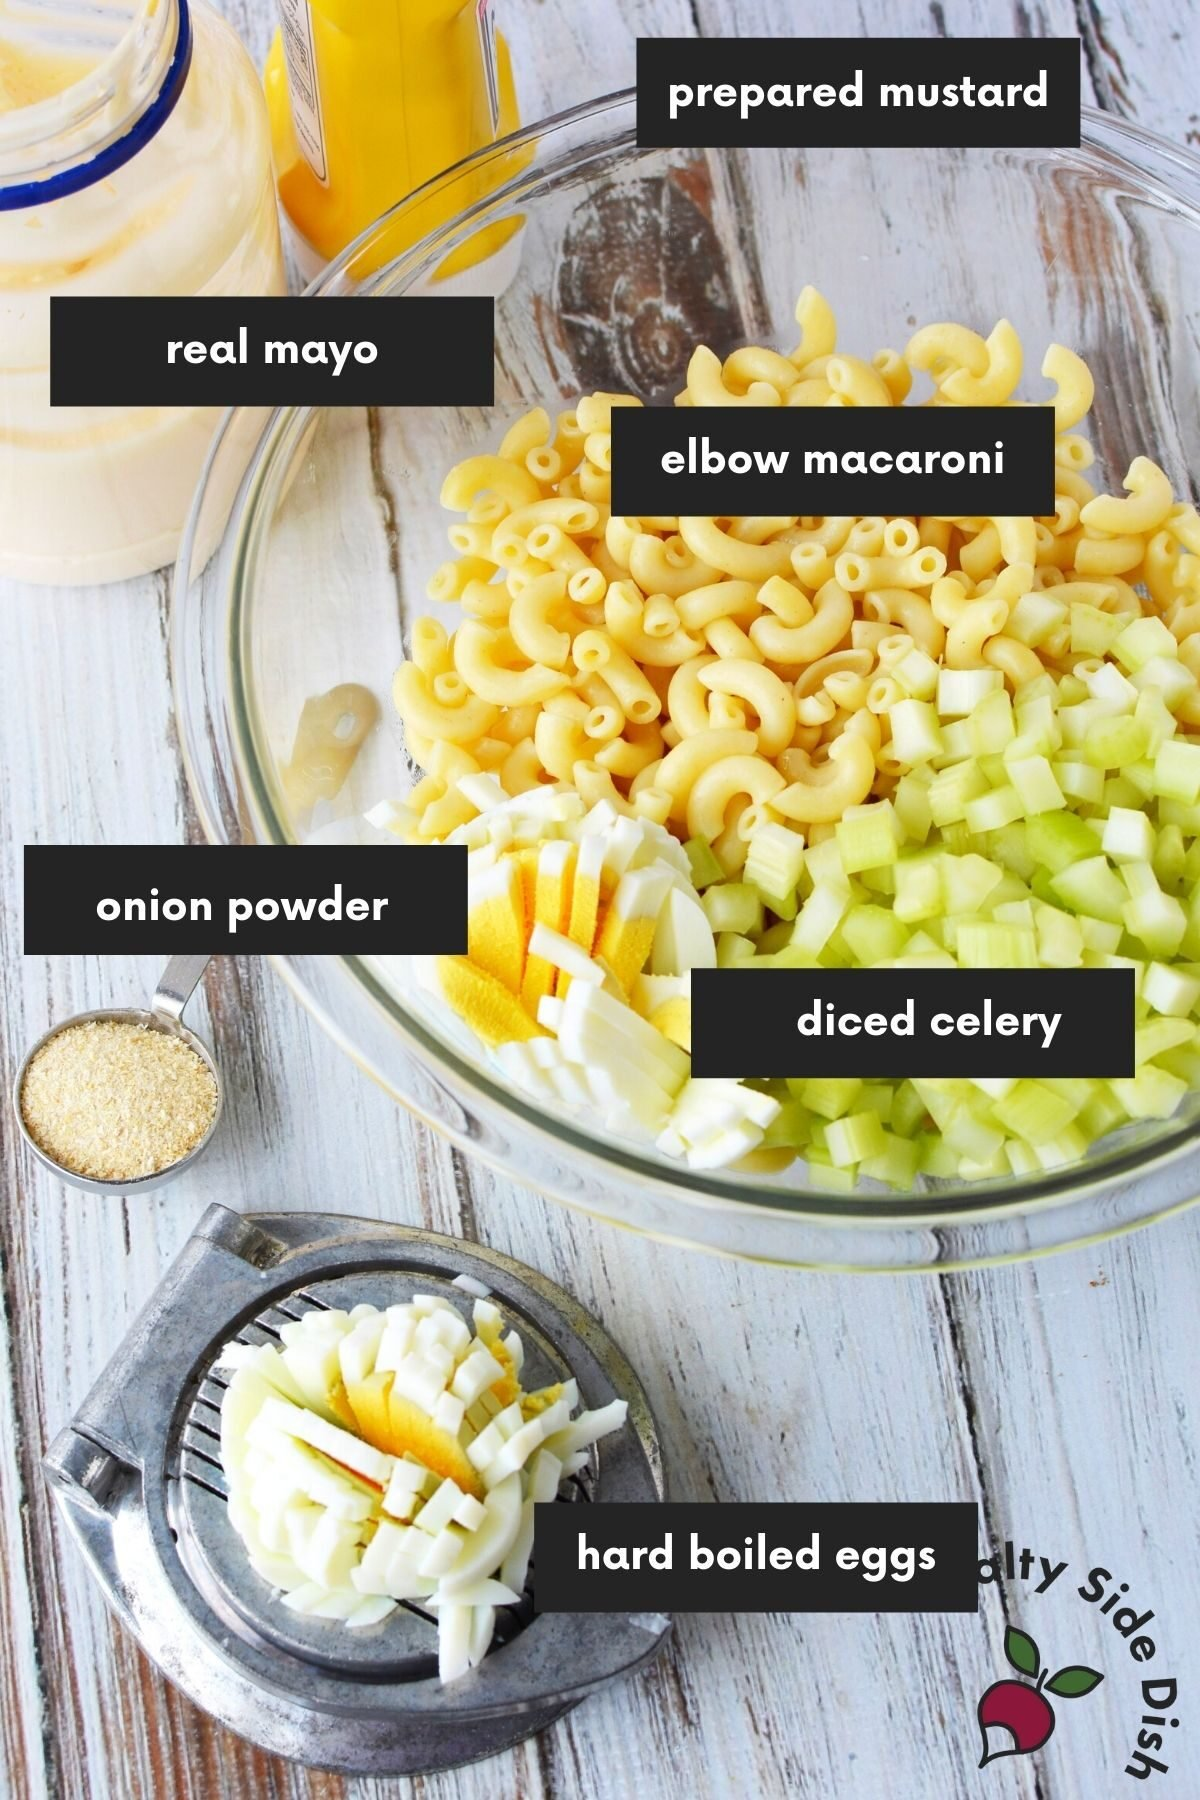 laid out ingredients labeled for macaroni salad.